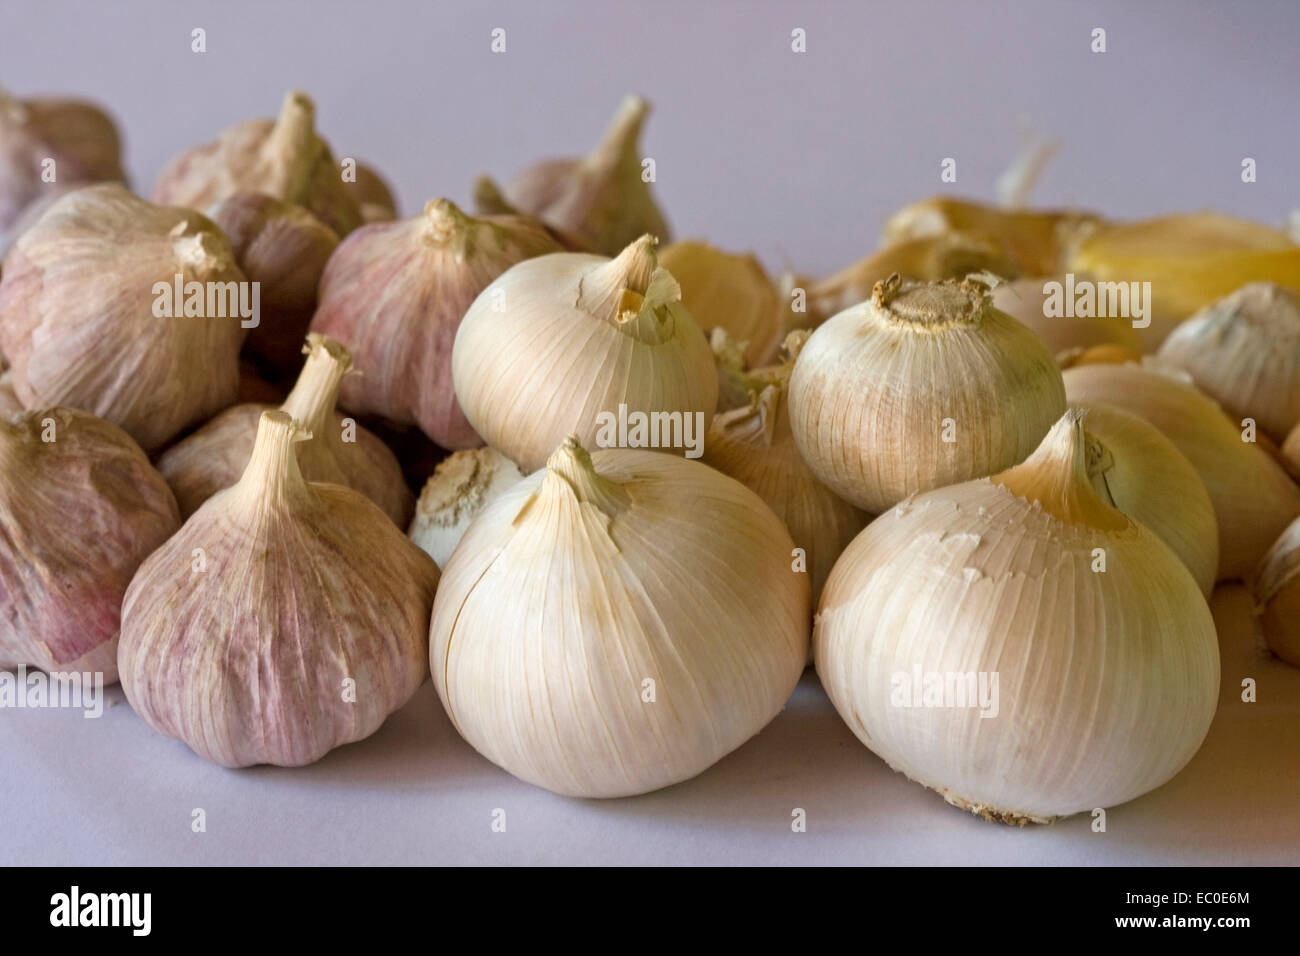 Cluster of freshly harvested bulbs of giant Russian / elephant garlic by smaller ones of red Italian garlic on pale - Stock Image